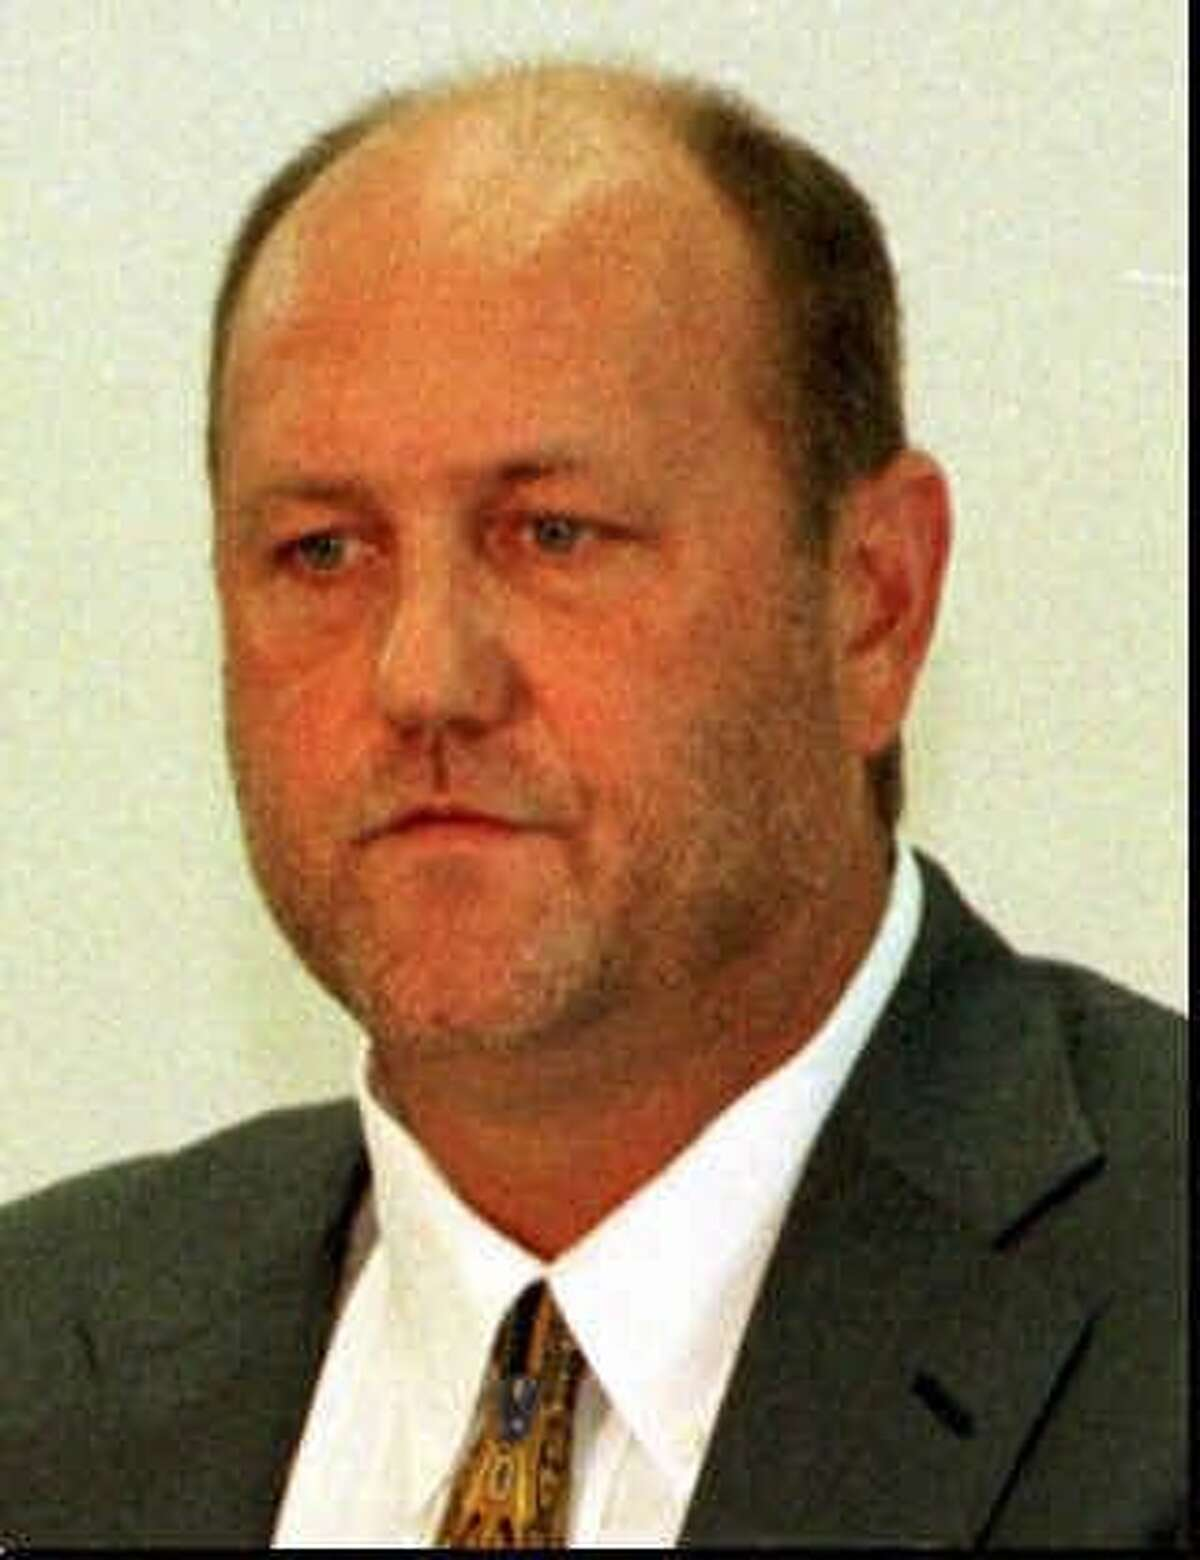 Erxleben, shown in 1998, is a former Texas All-American and NFL kicker.